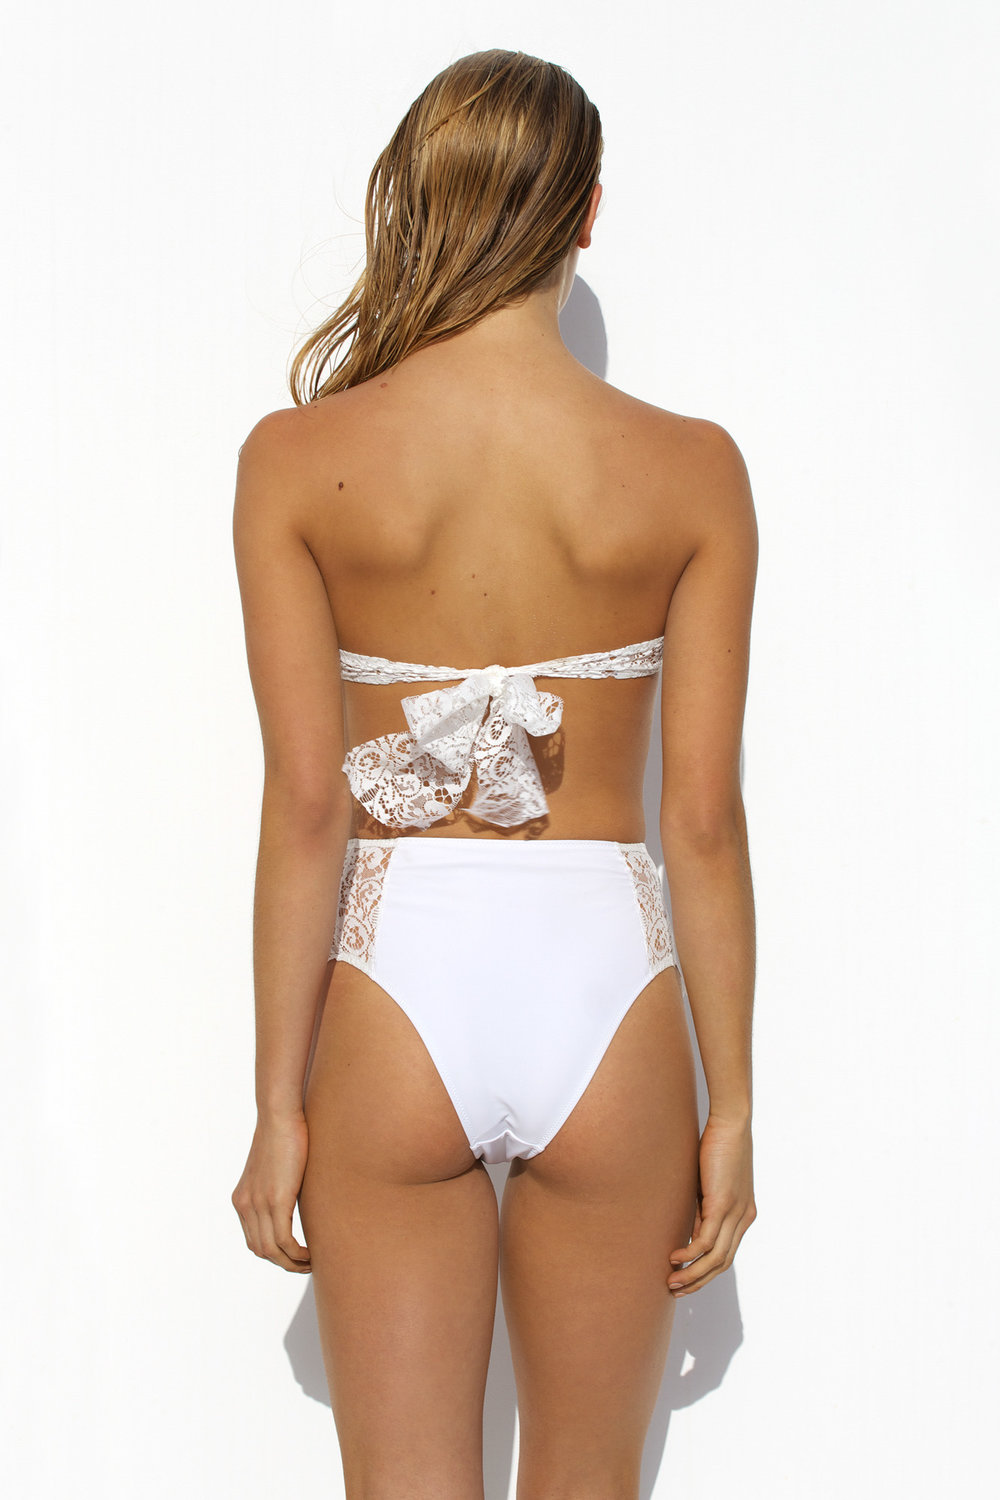 Cap-pas-Cap White High waisted high rise above the hip cut and bandeau with lace cut b DIDA SS17.jpg